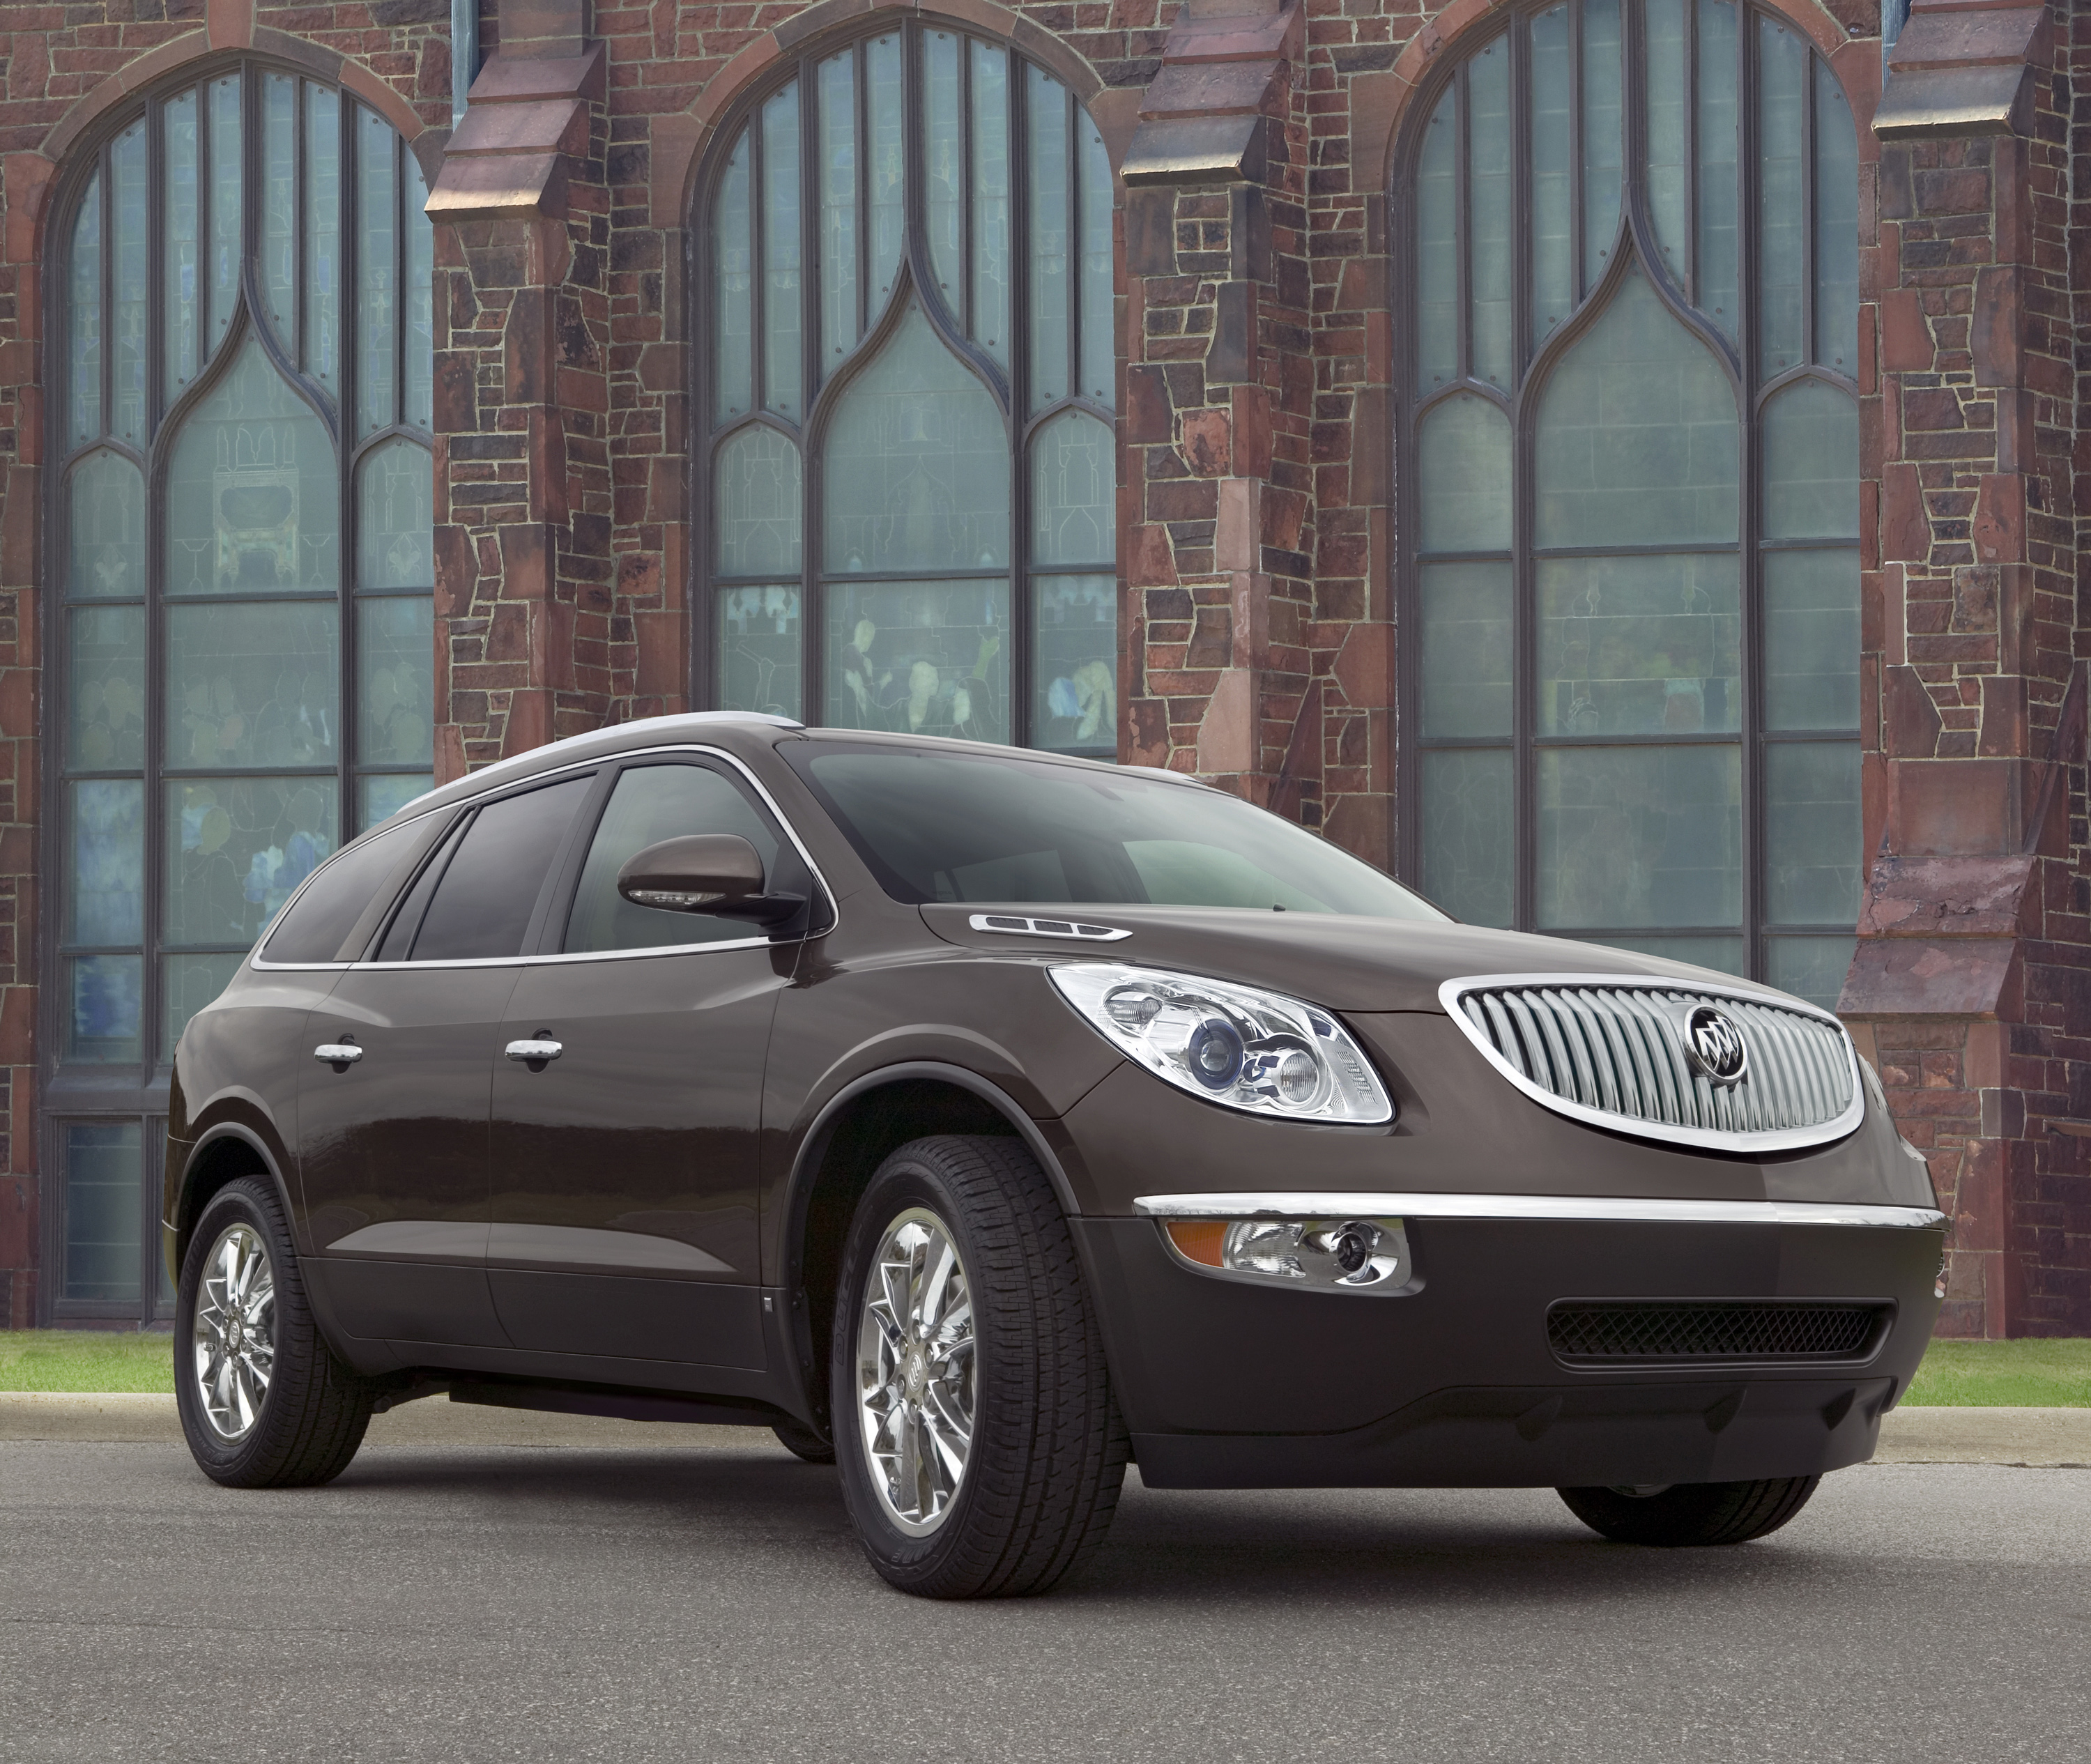 Buick Enlave: Part Two: Buick Enclave Road Test